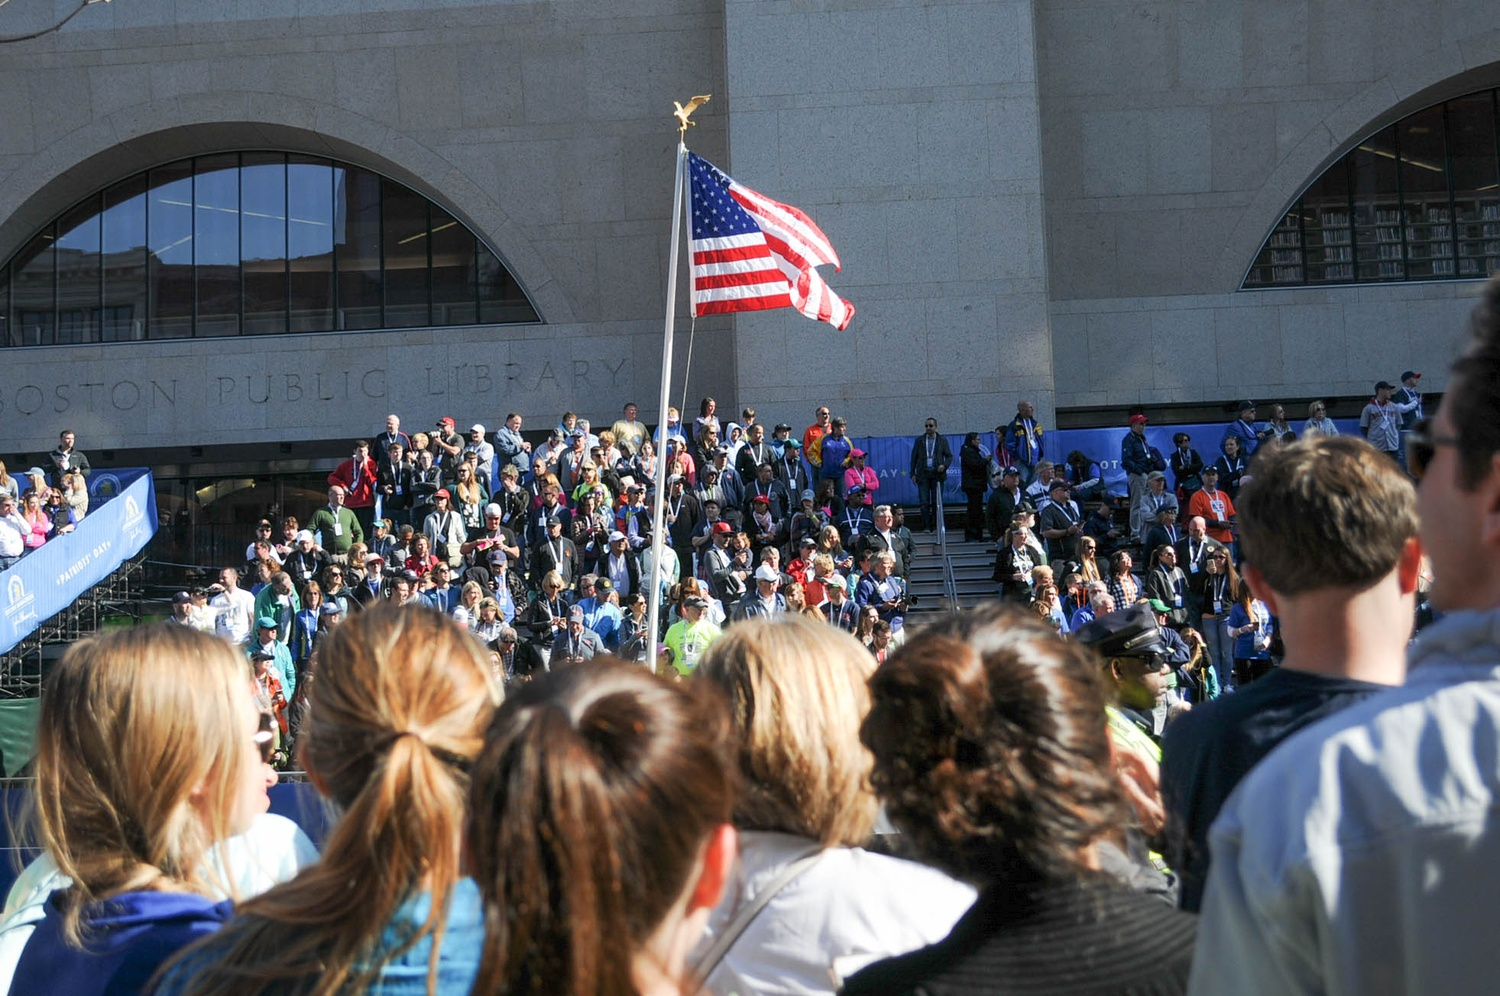 In front of a large stand flanking the finish line at the Boston Public Library, an American flag stands tall in the sun.